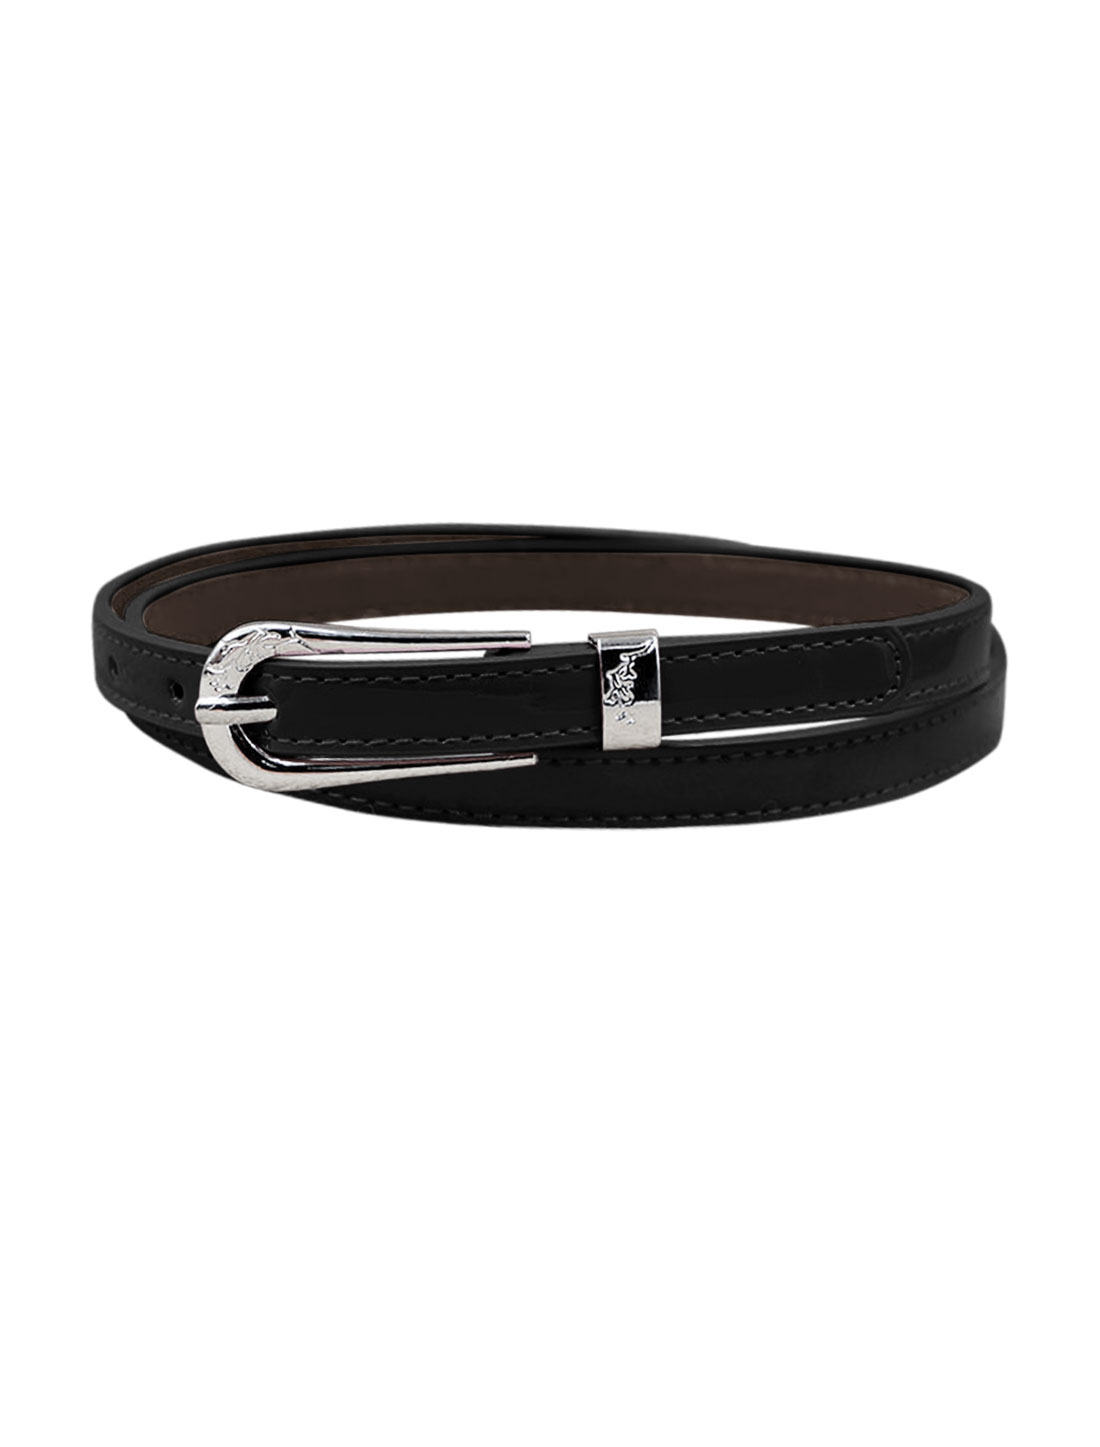 Women Single Pin Buckle Adjustable PU Waist Belt Black